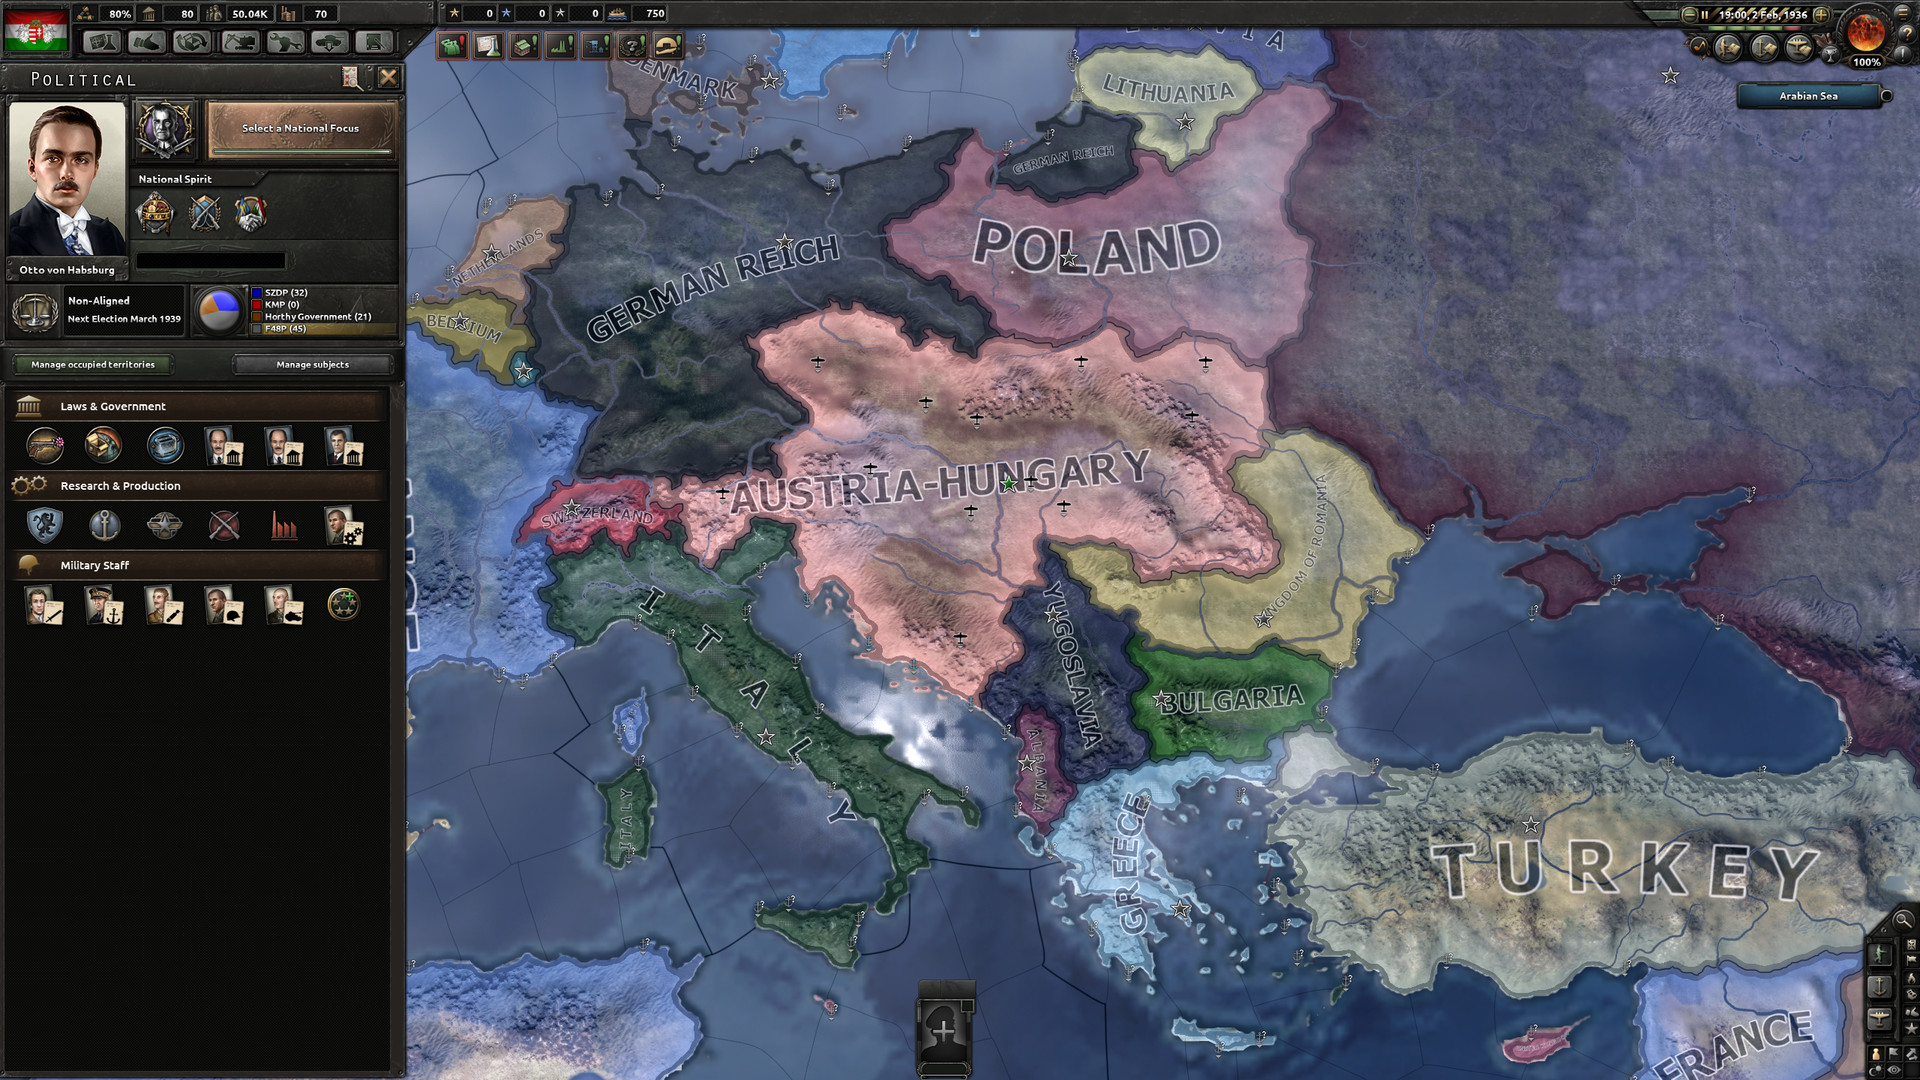 download hearts of iron iv deat or dishonor-codex cracked singlelink iso rar full version multi language free for pc